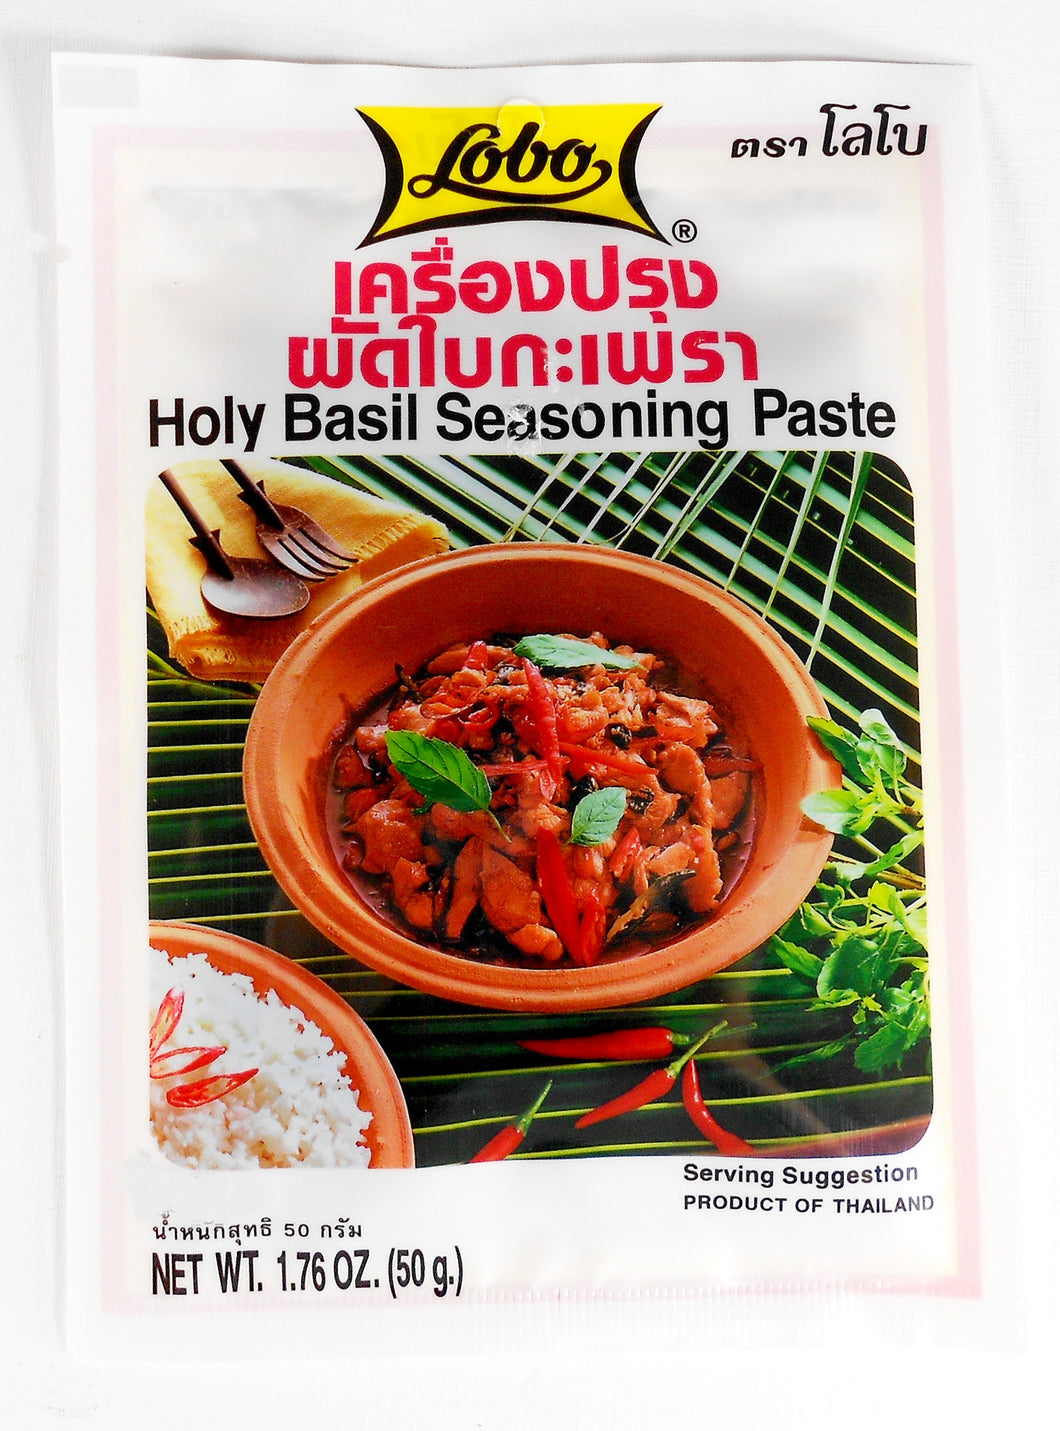 Lobo Thai Kra Prao Seasoning Paste 1.76 Oz. (50 g) Pack of 2